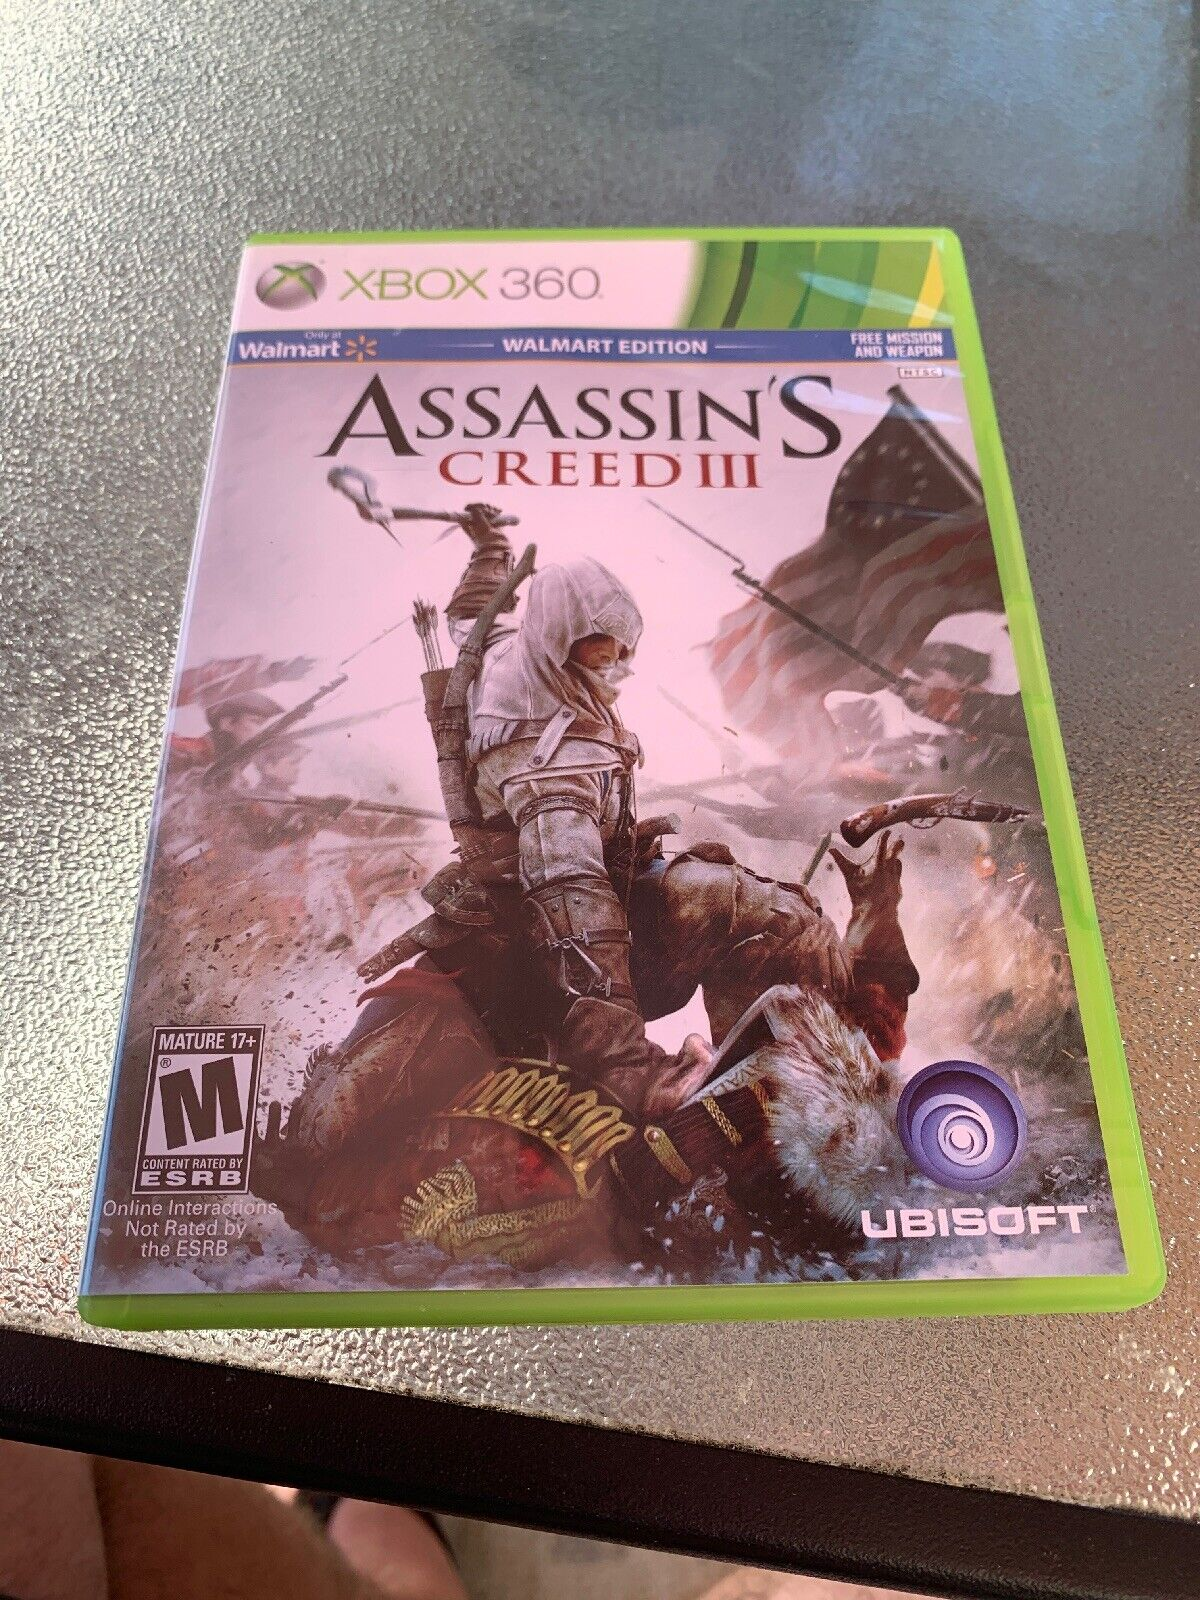 Assassin's Creed III Walmart Edition Rr211752 Xbox 360 MINT